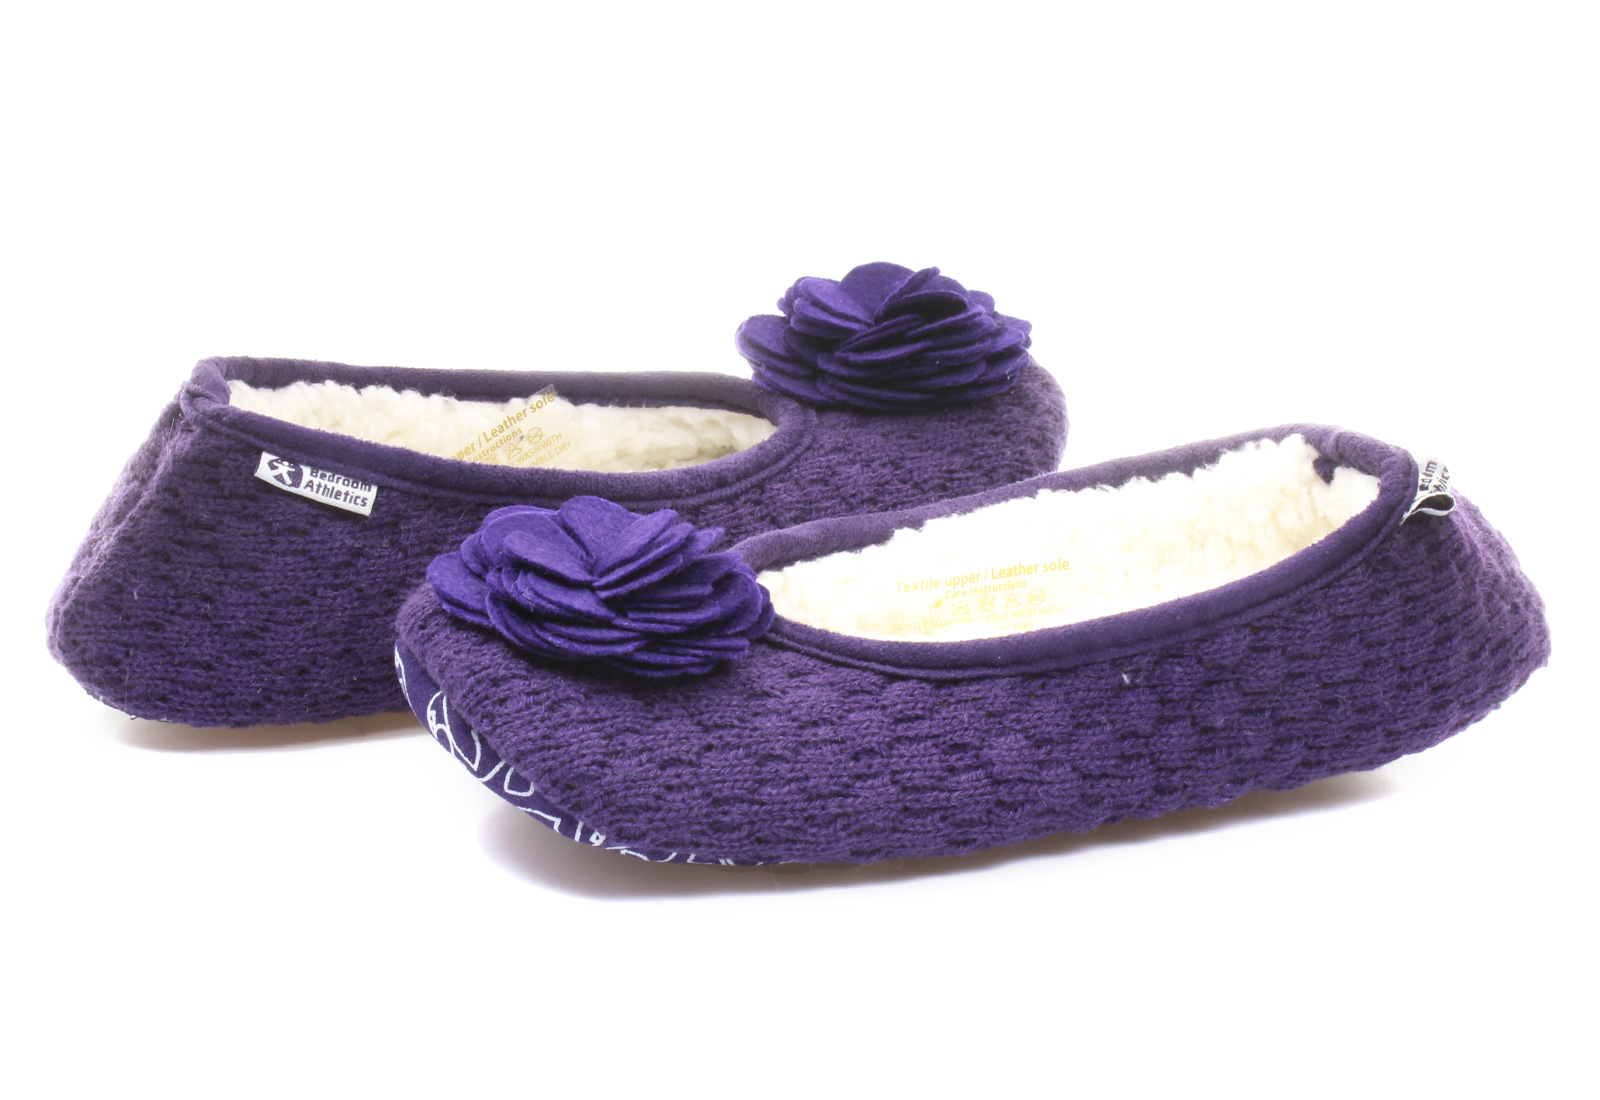 Bedroom Athletics Slippers Charlize 210 043 512 Online Shop For Sneakers Shoes And Boots